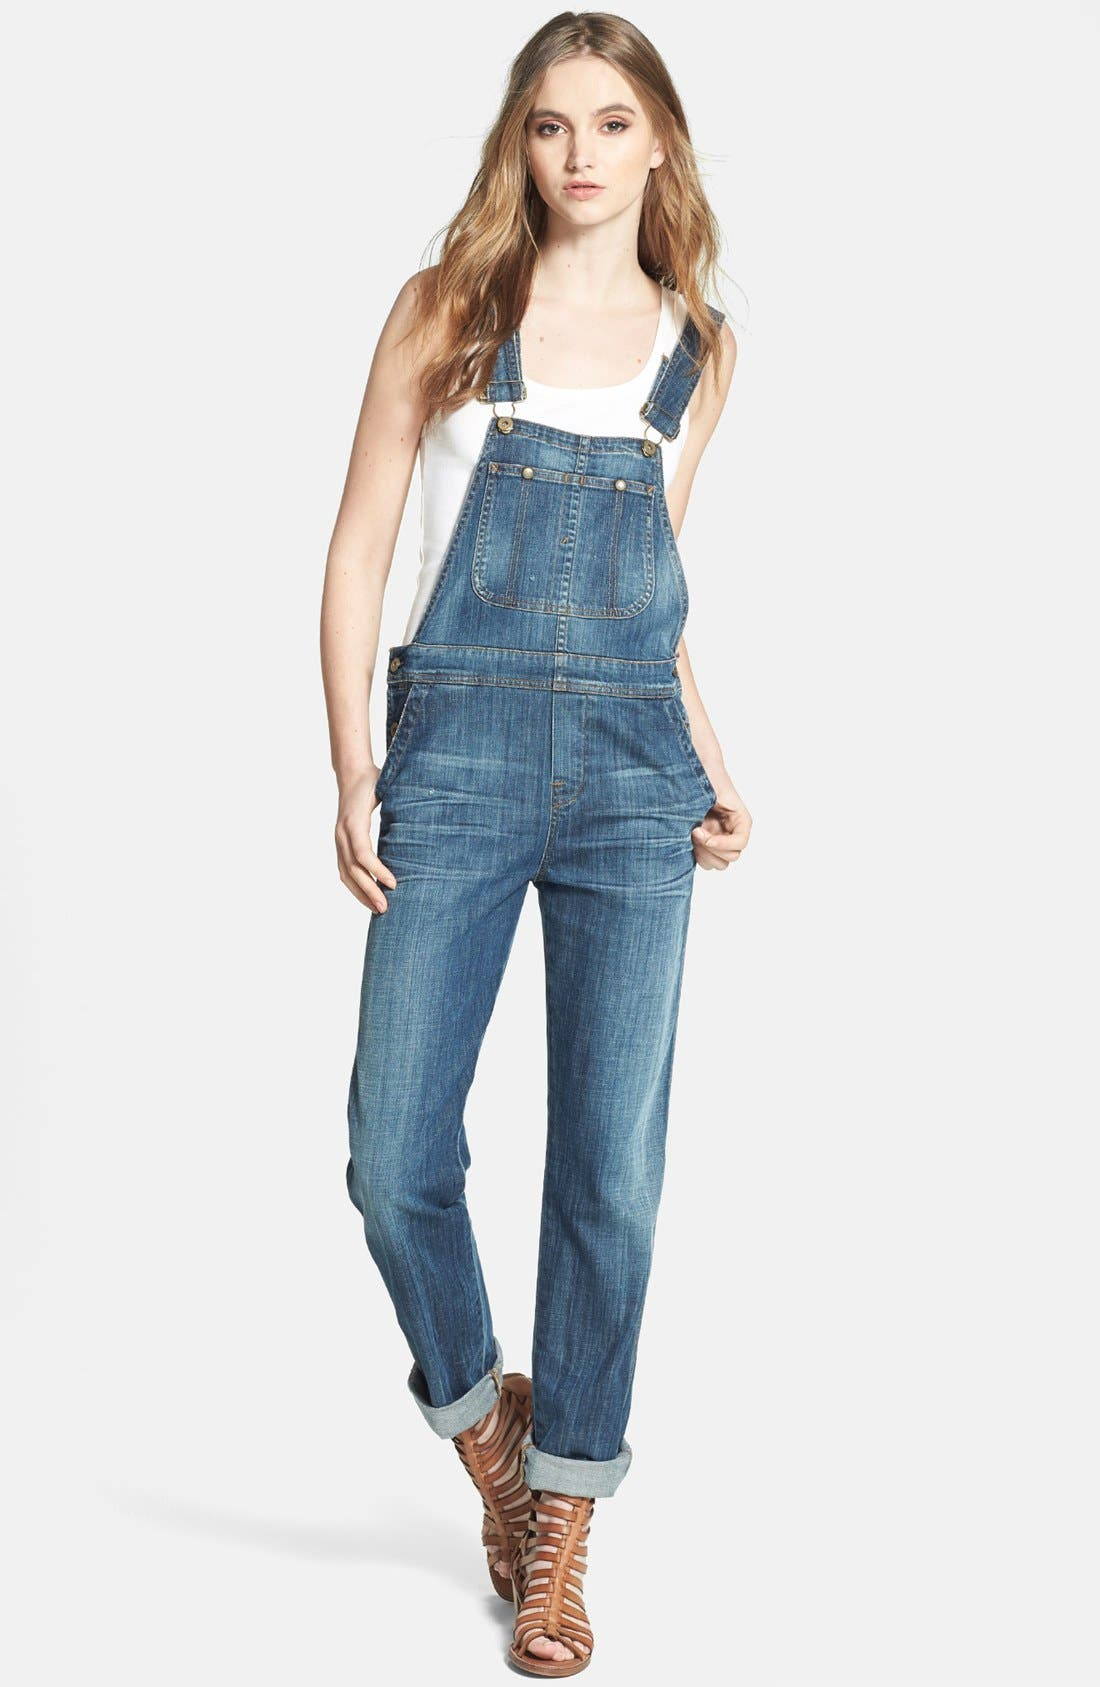 Alternate Image 1 Selected - Citizens of Humanity 'Drama Quincey' Overalls (Medium)